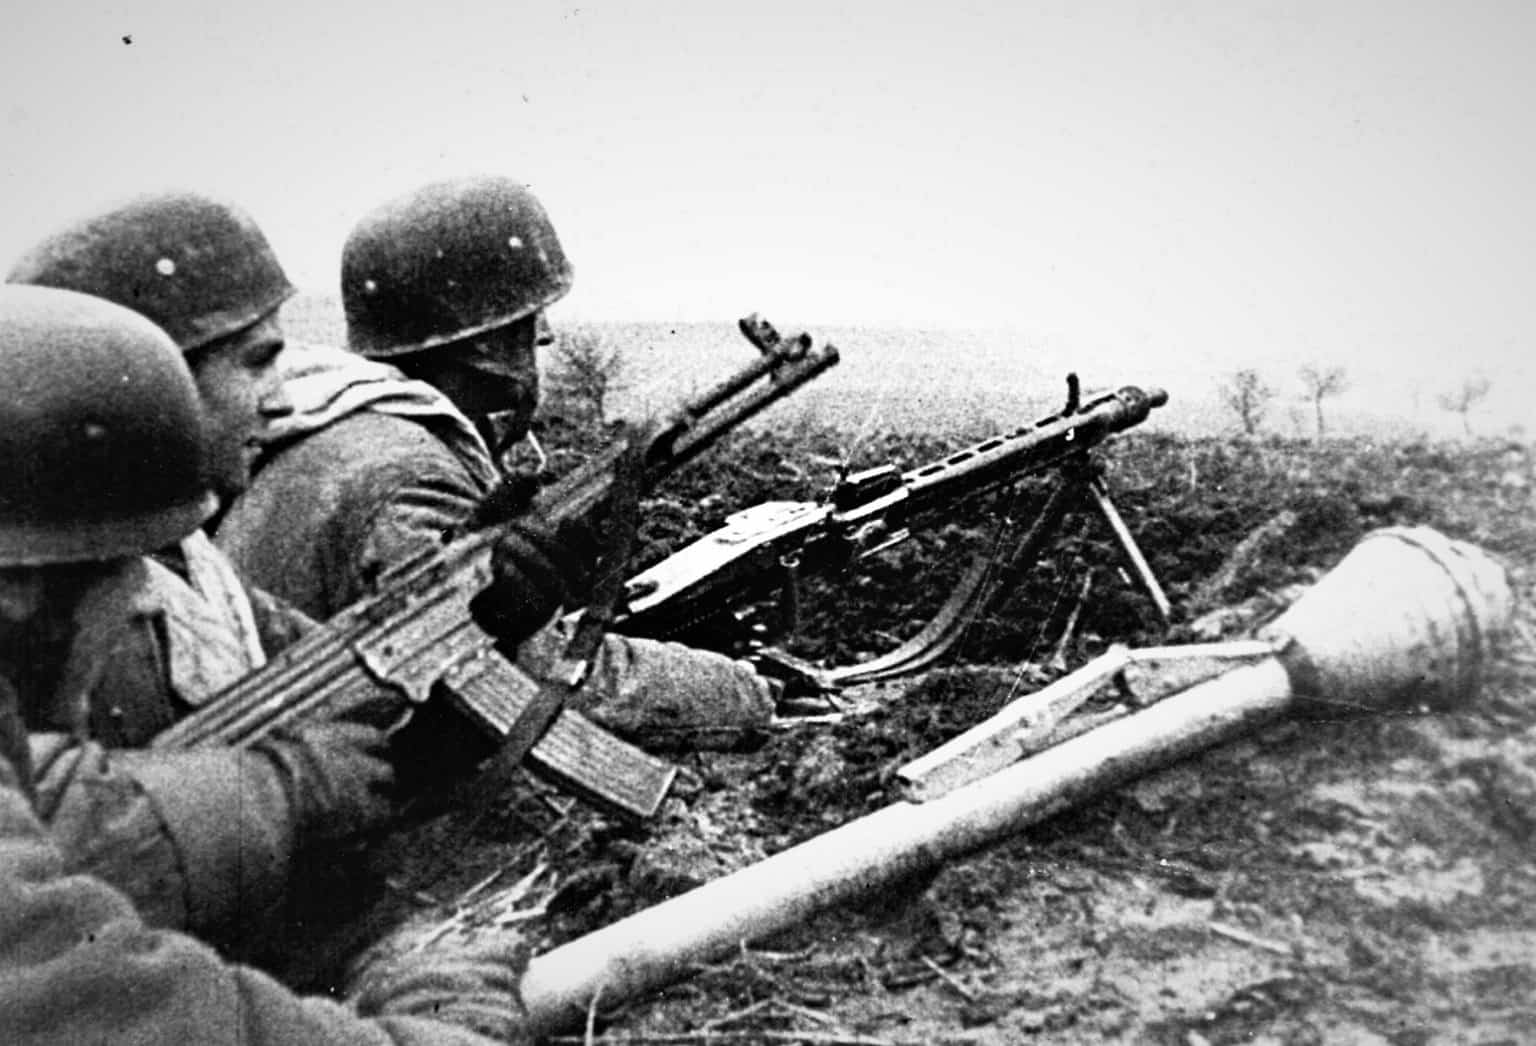 Men of the 9th Parachute Division